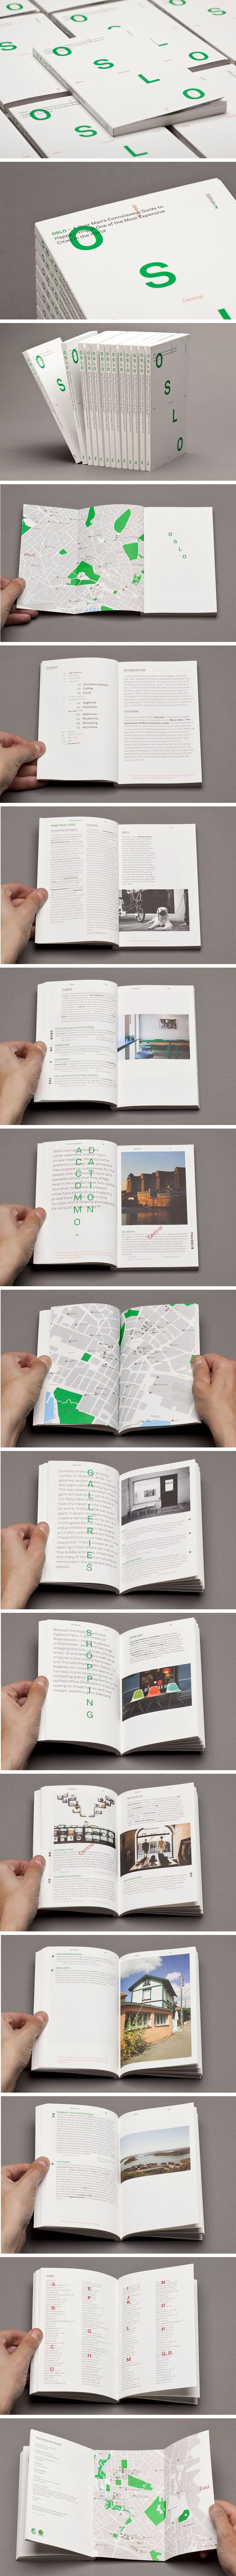 bold and minimal #design #brochure #graphics #contemporary #print #travel #guide